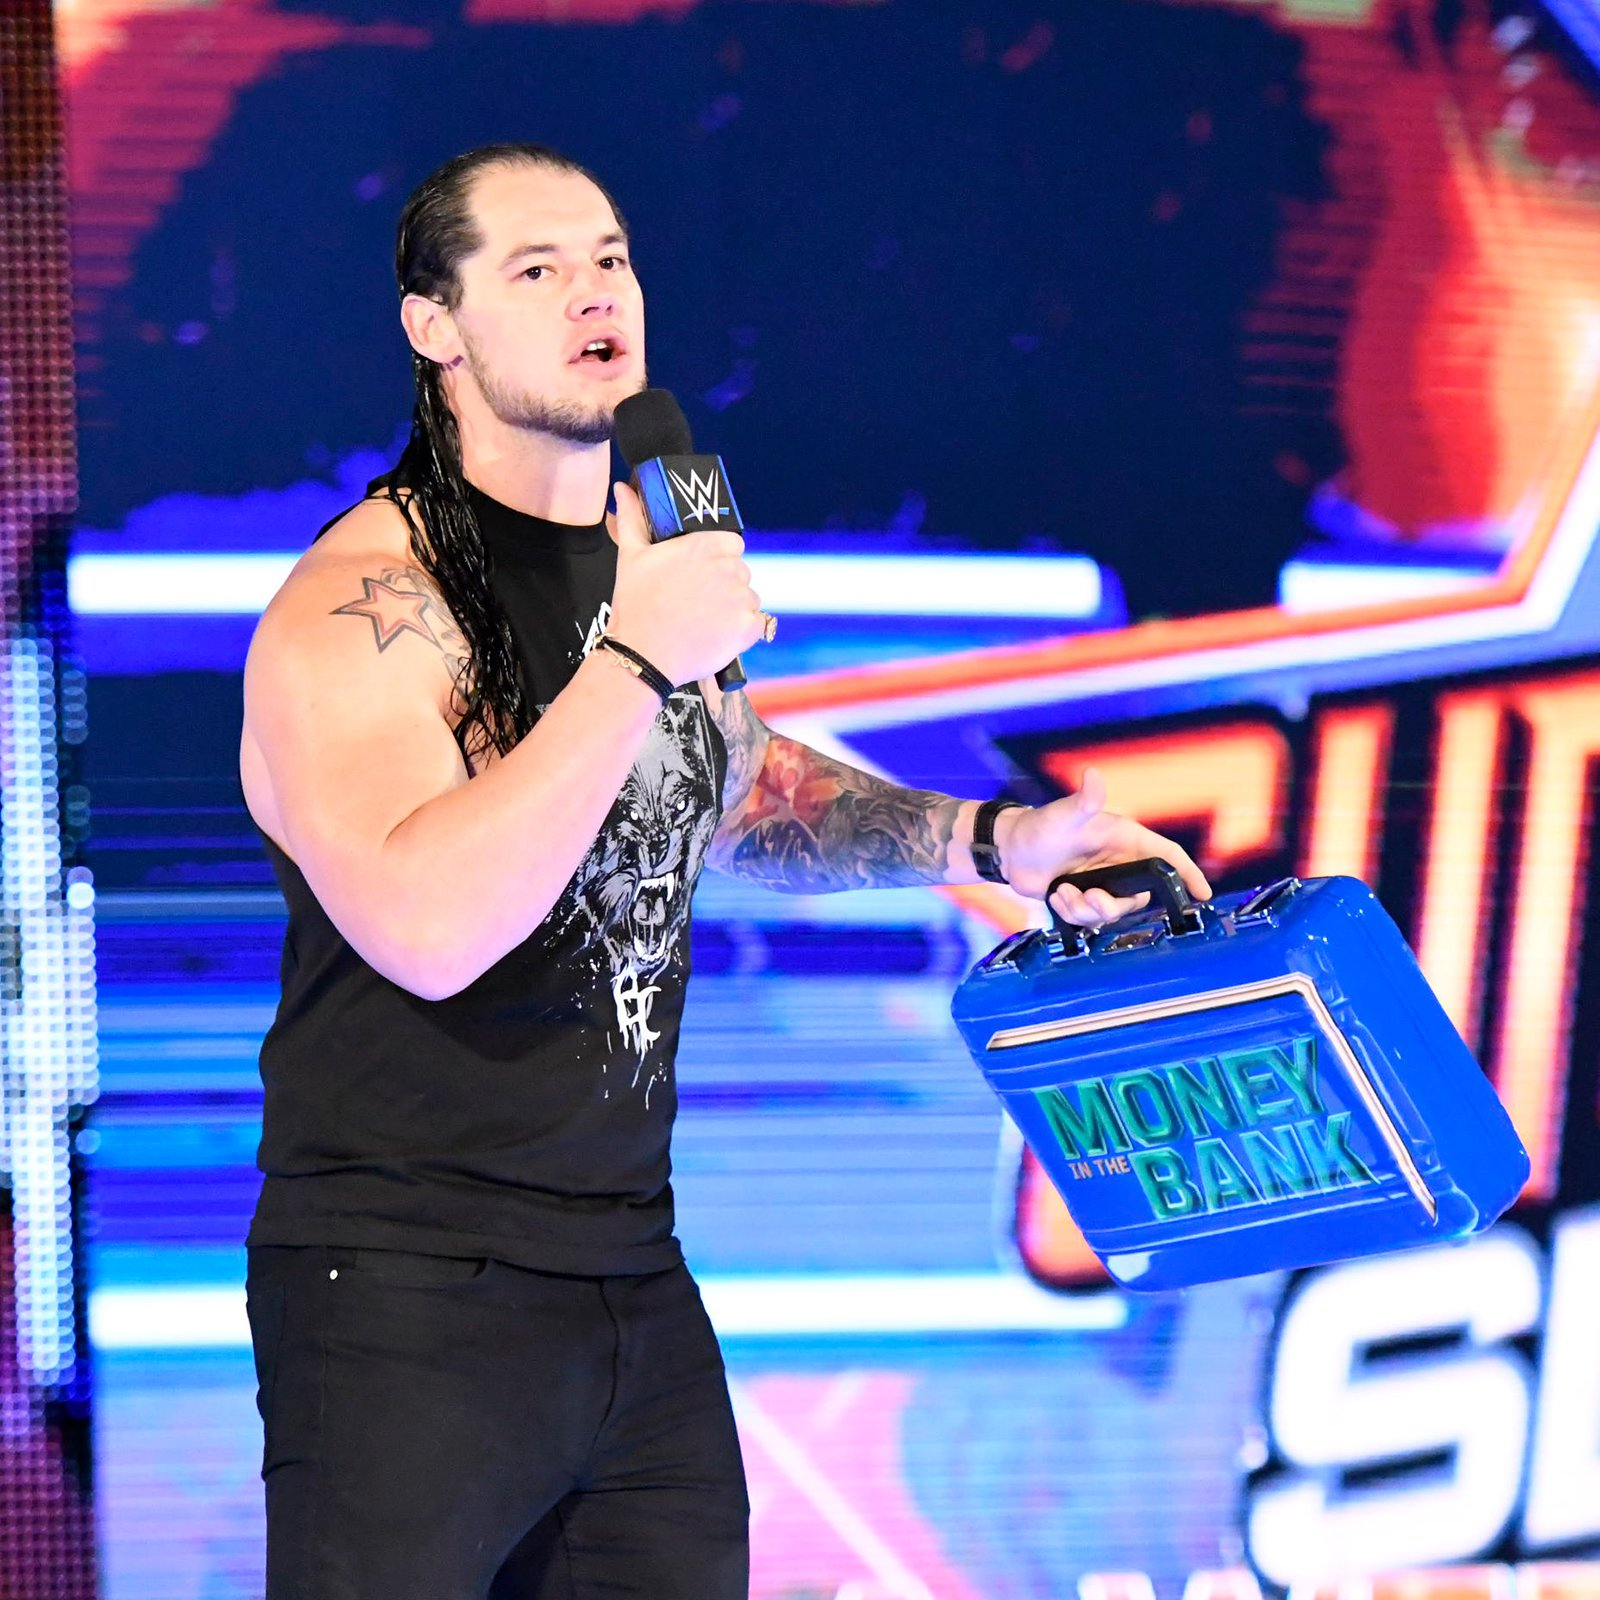 Suddenly, Cena is interrupted by Baron Corbin, who brawled with The Leader of The Cenation after SmackDown LIVE last week, exclusively on WWE Network.